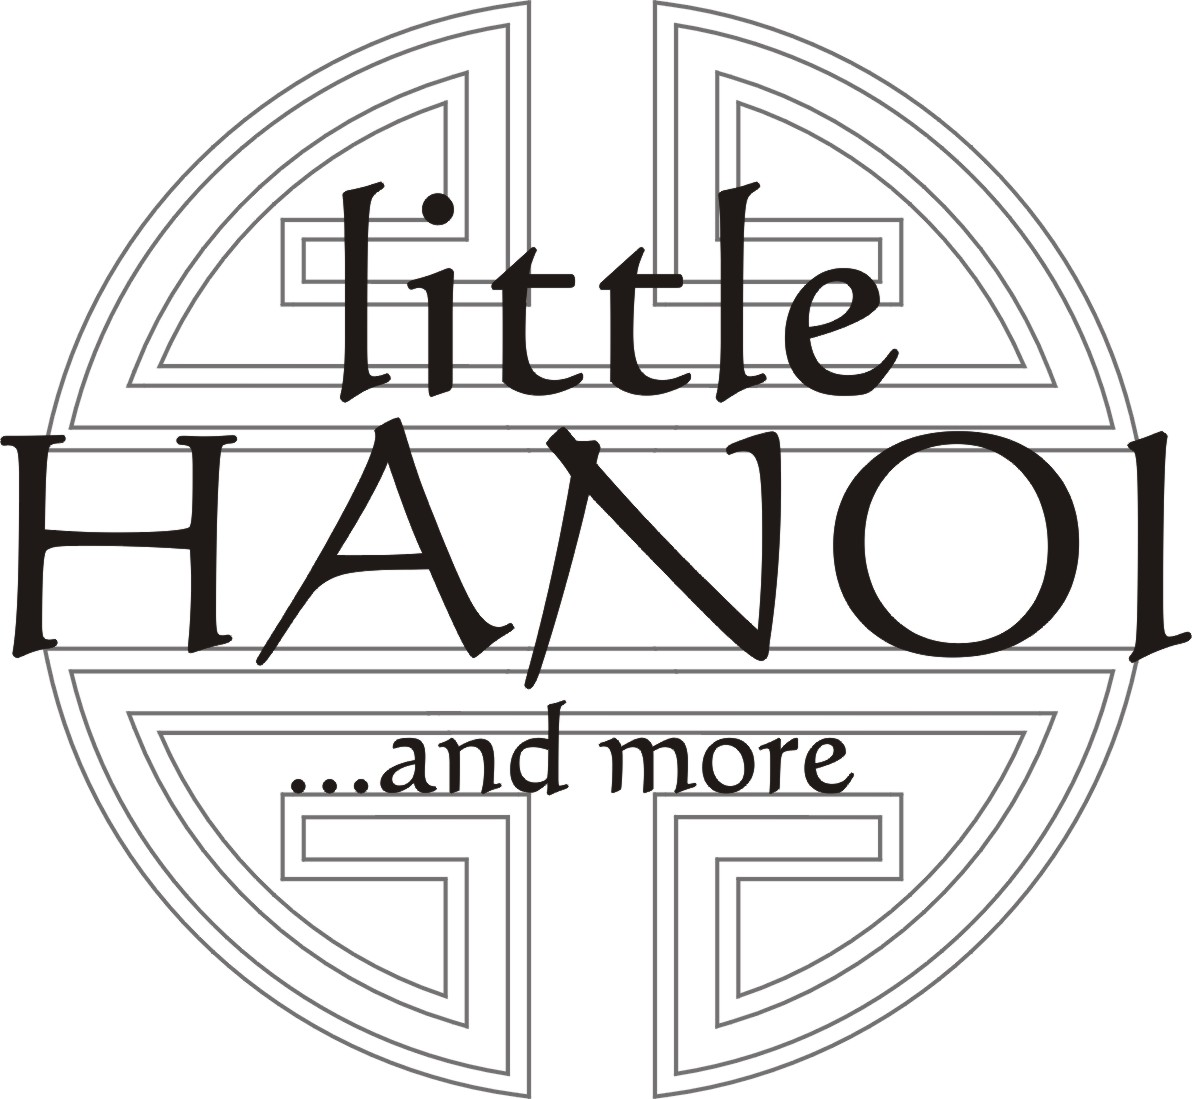 Little Hanoi ...and more!